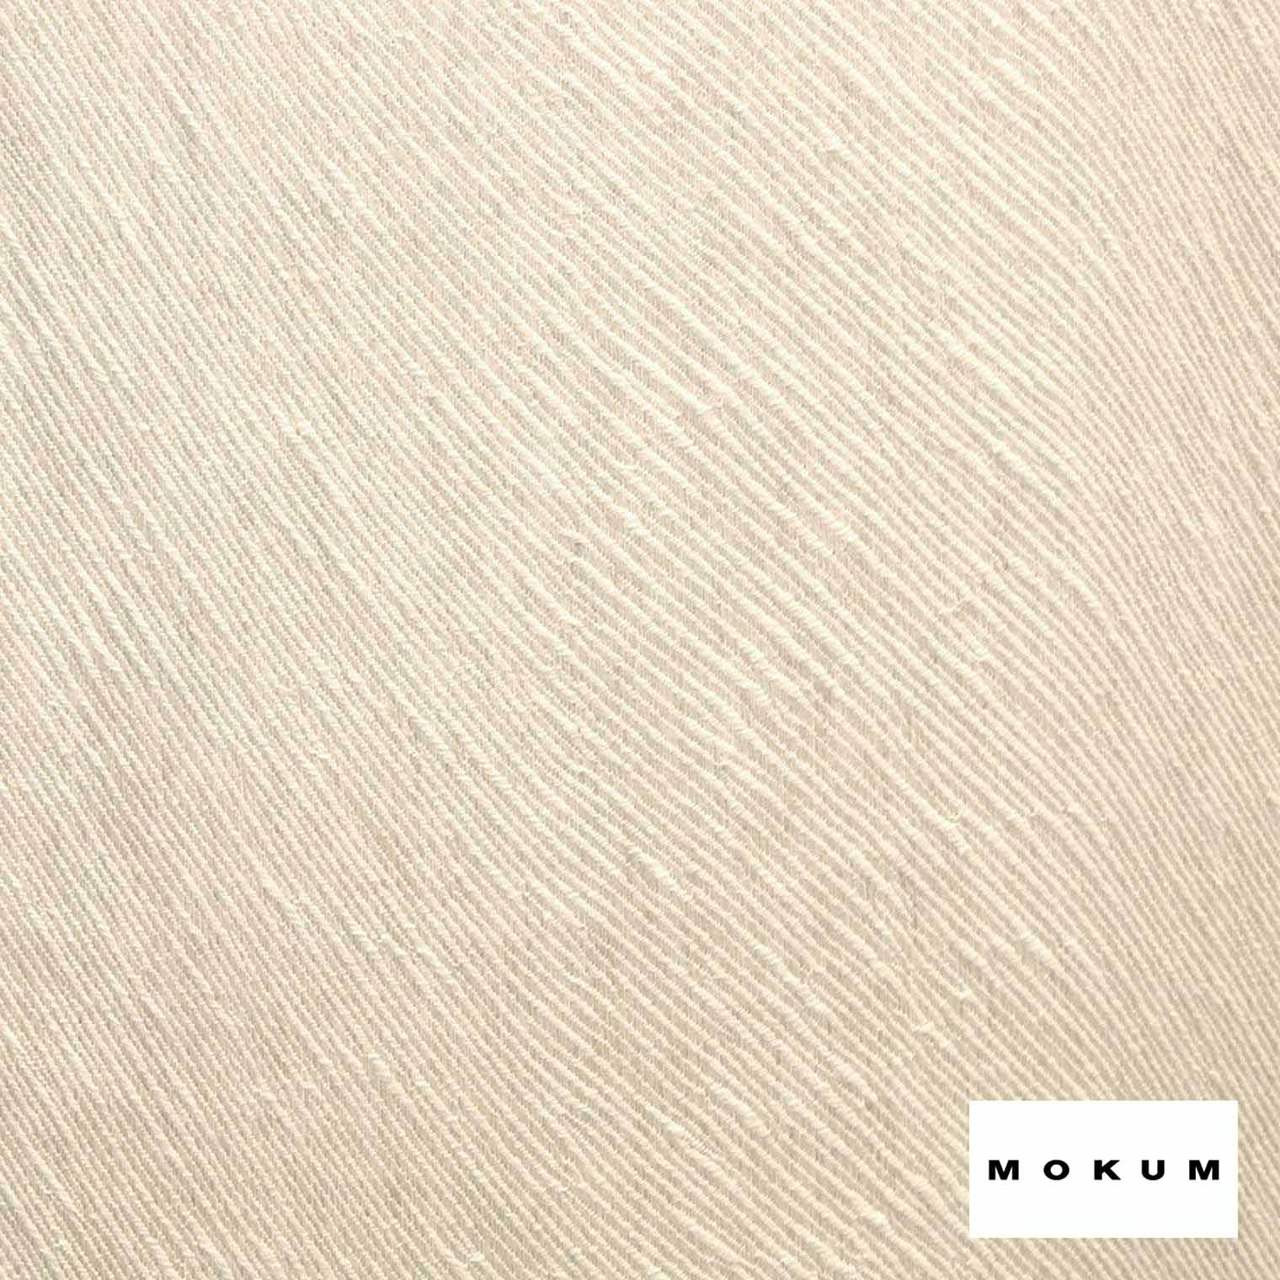 Mokum Grassland * - Ecru  | Curtain Fabric - Gold,  Yellow, Plain, Natural Fibre, Organic, Washable, Domestic Use, Dry Clean, Natural, Wide Width